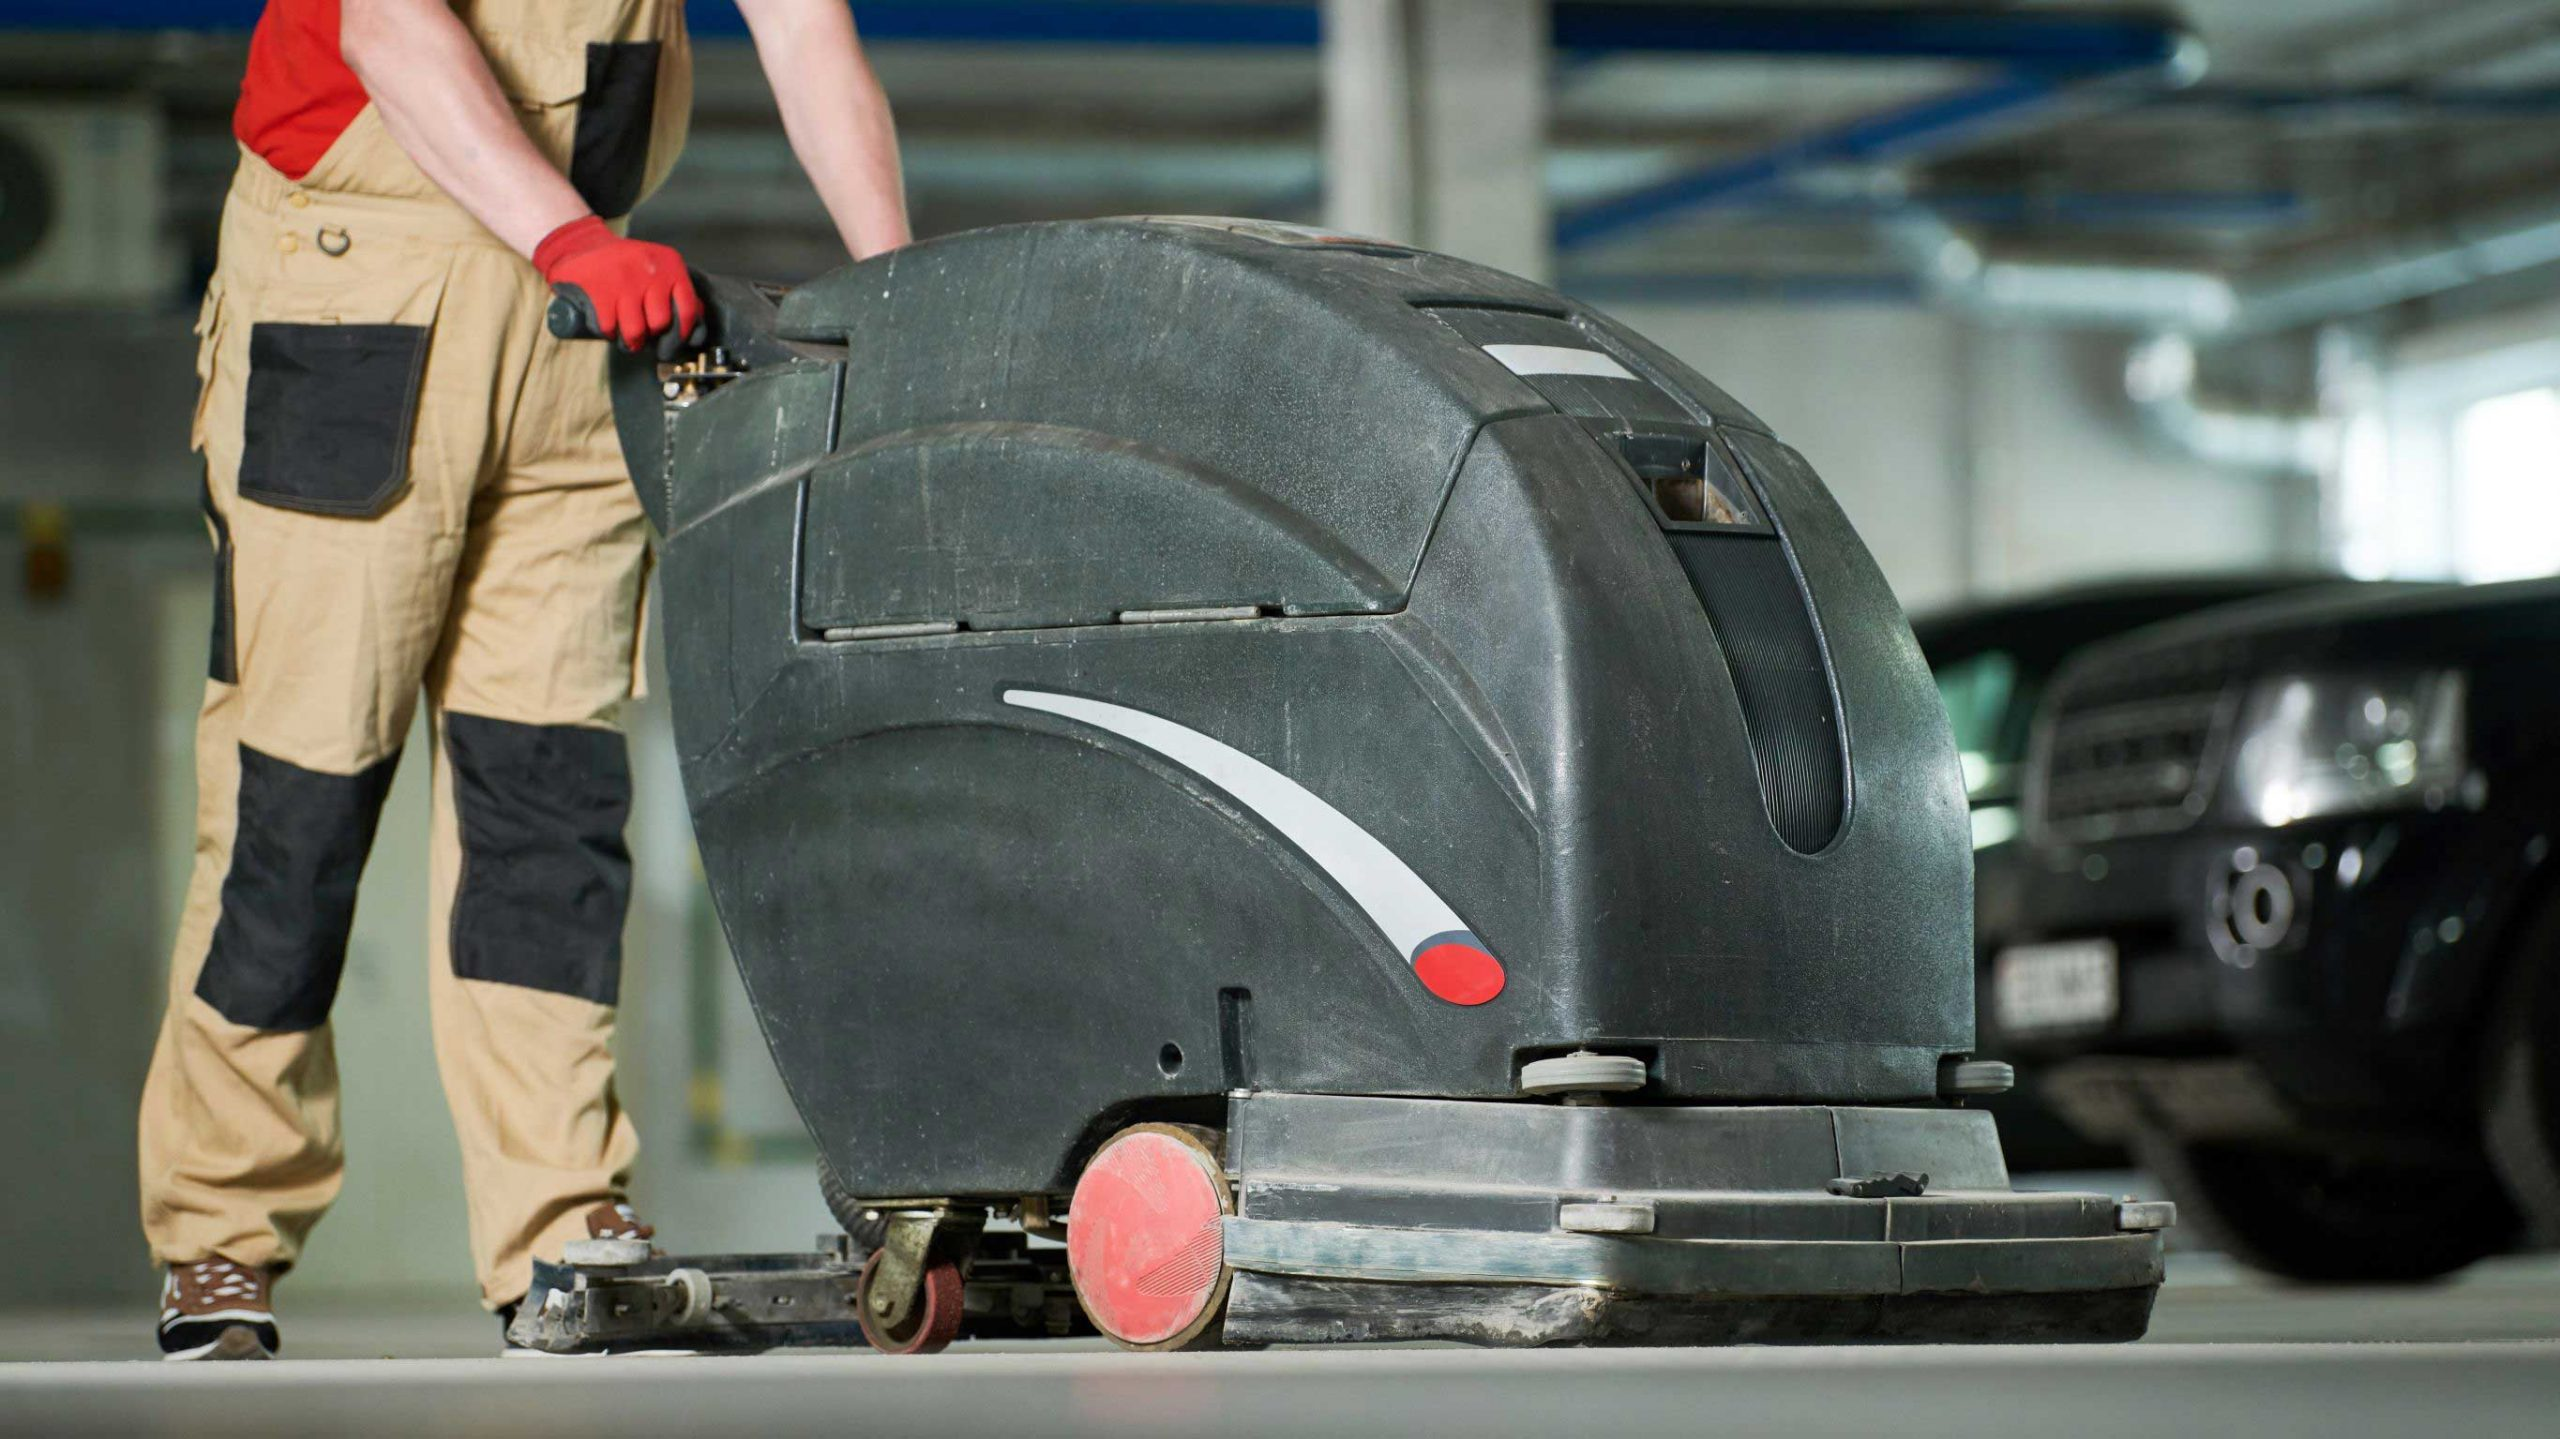 Commercial Floor Scrubbers: Reviewing the Top Machines of 2021